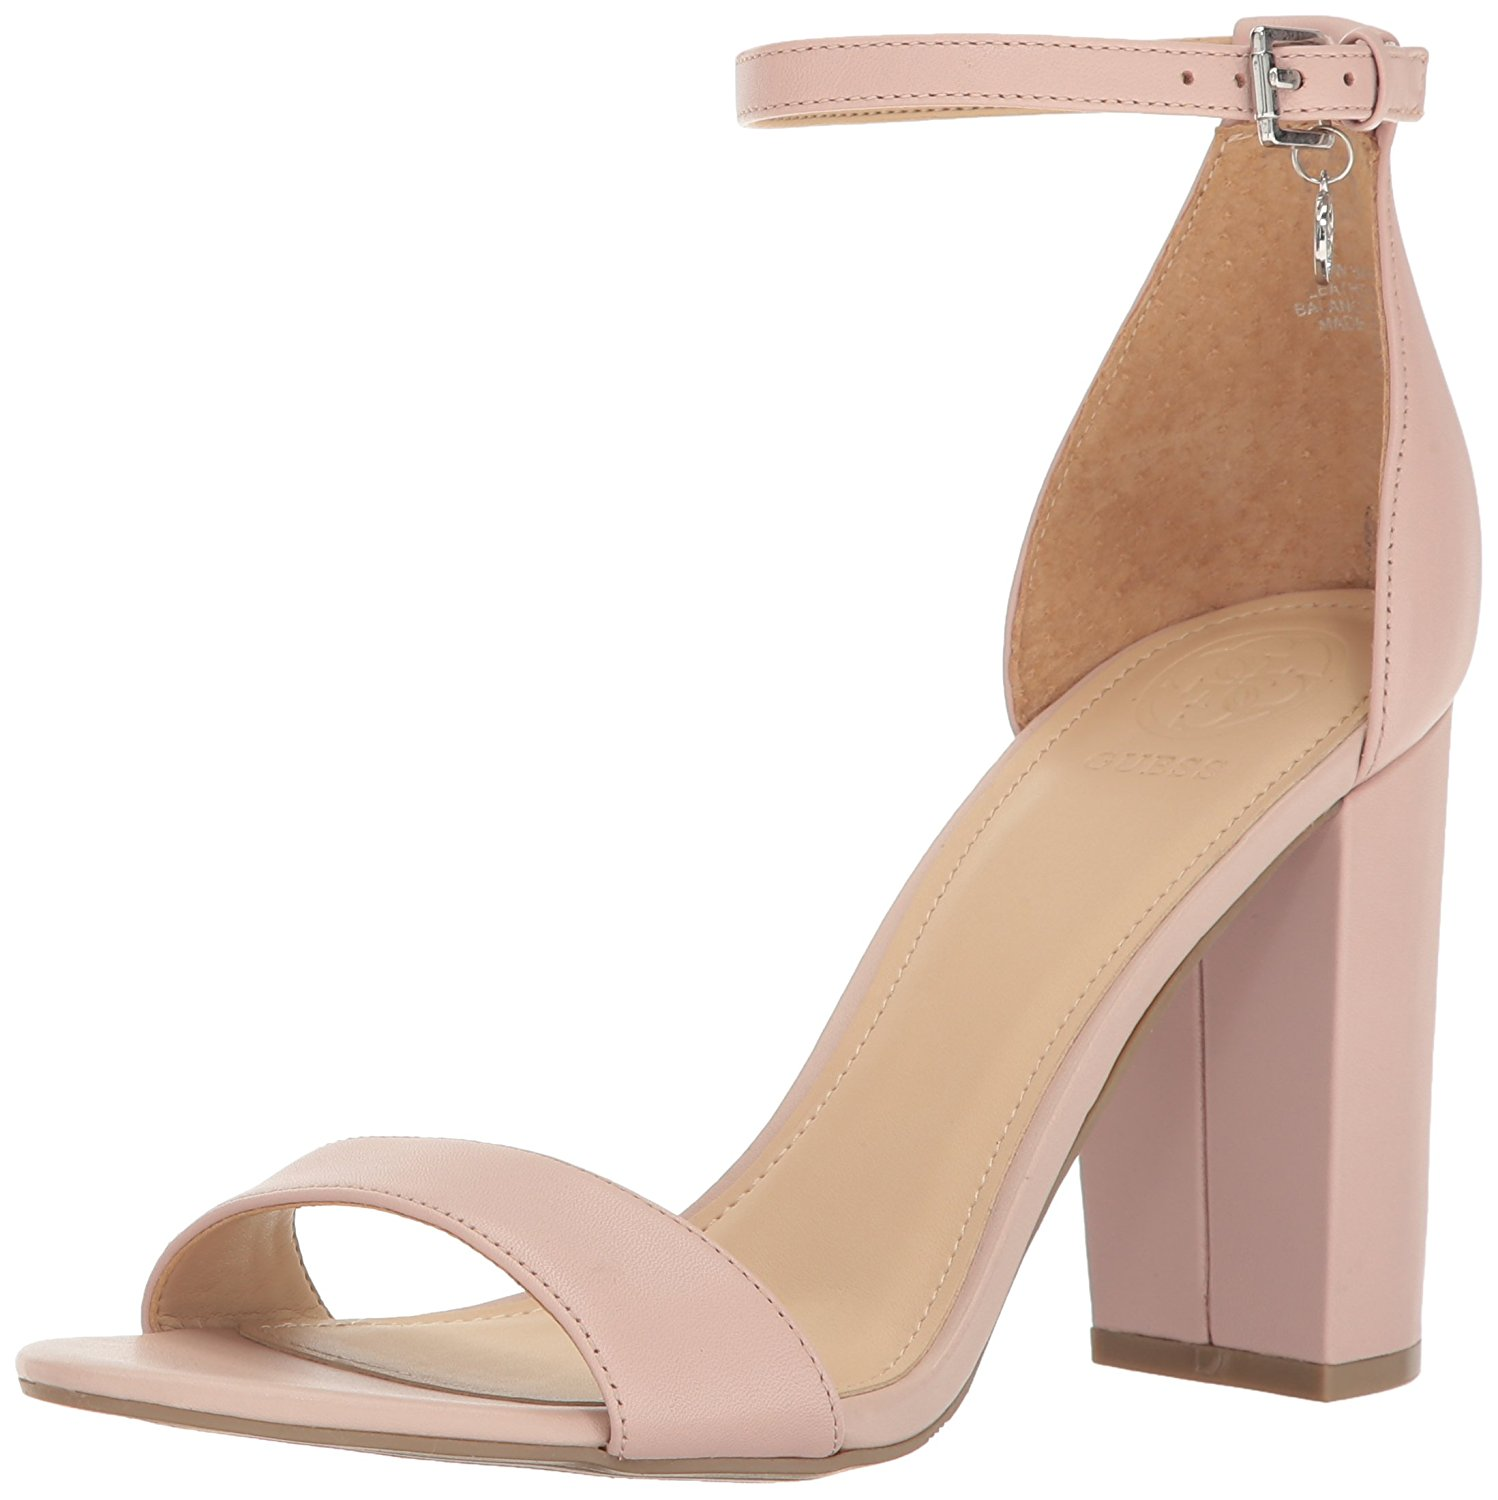 GUESS Womens Bamboo Open Toe Casual Ankle Strap Sandals